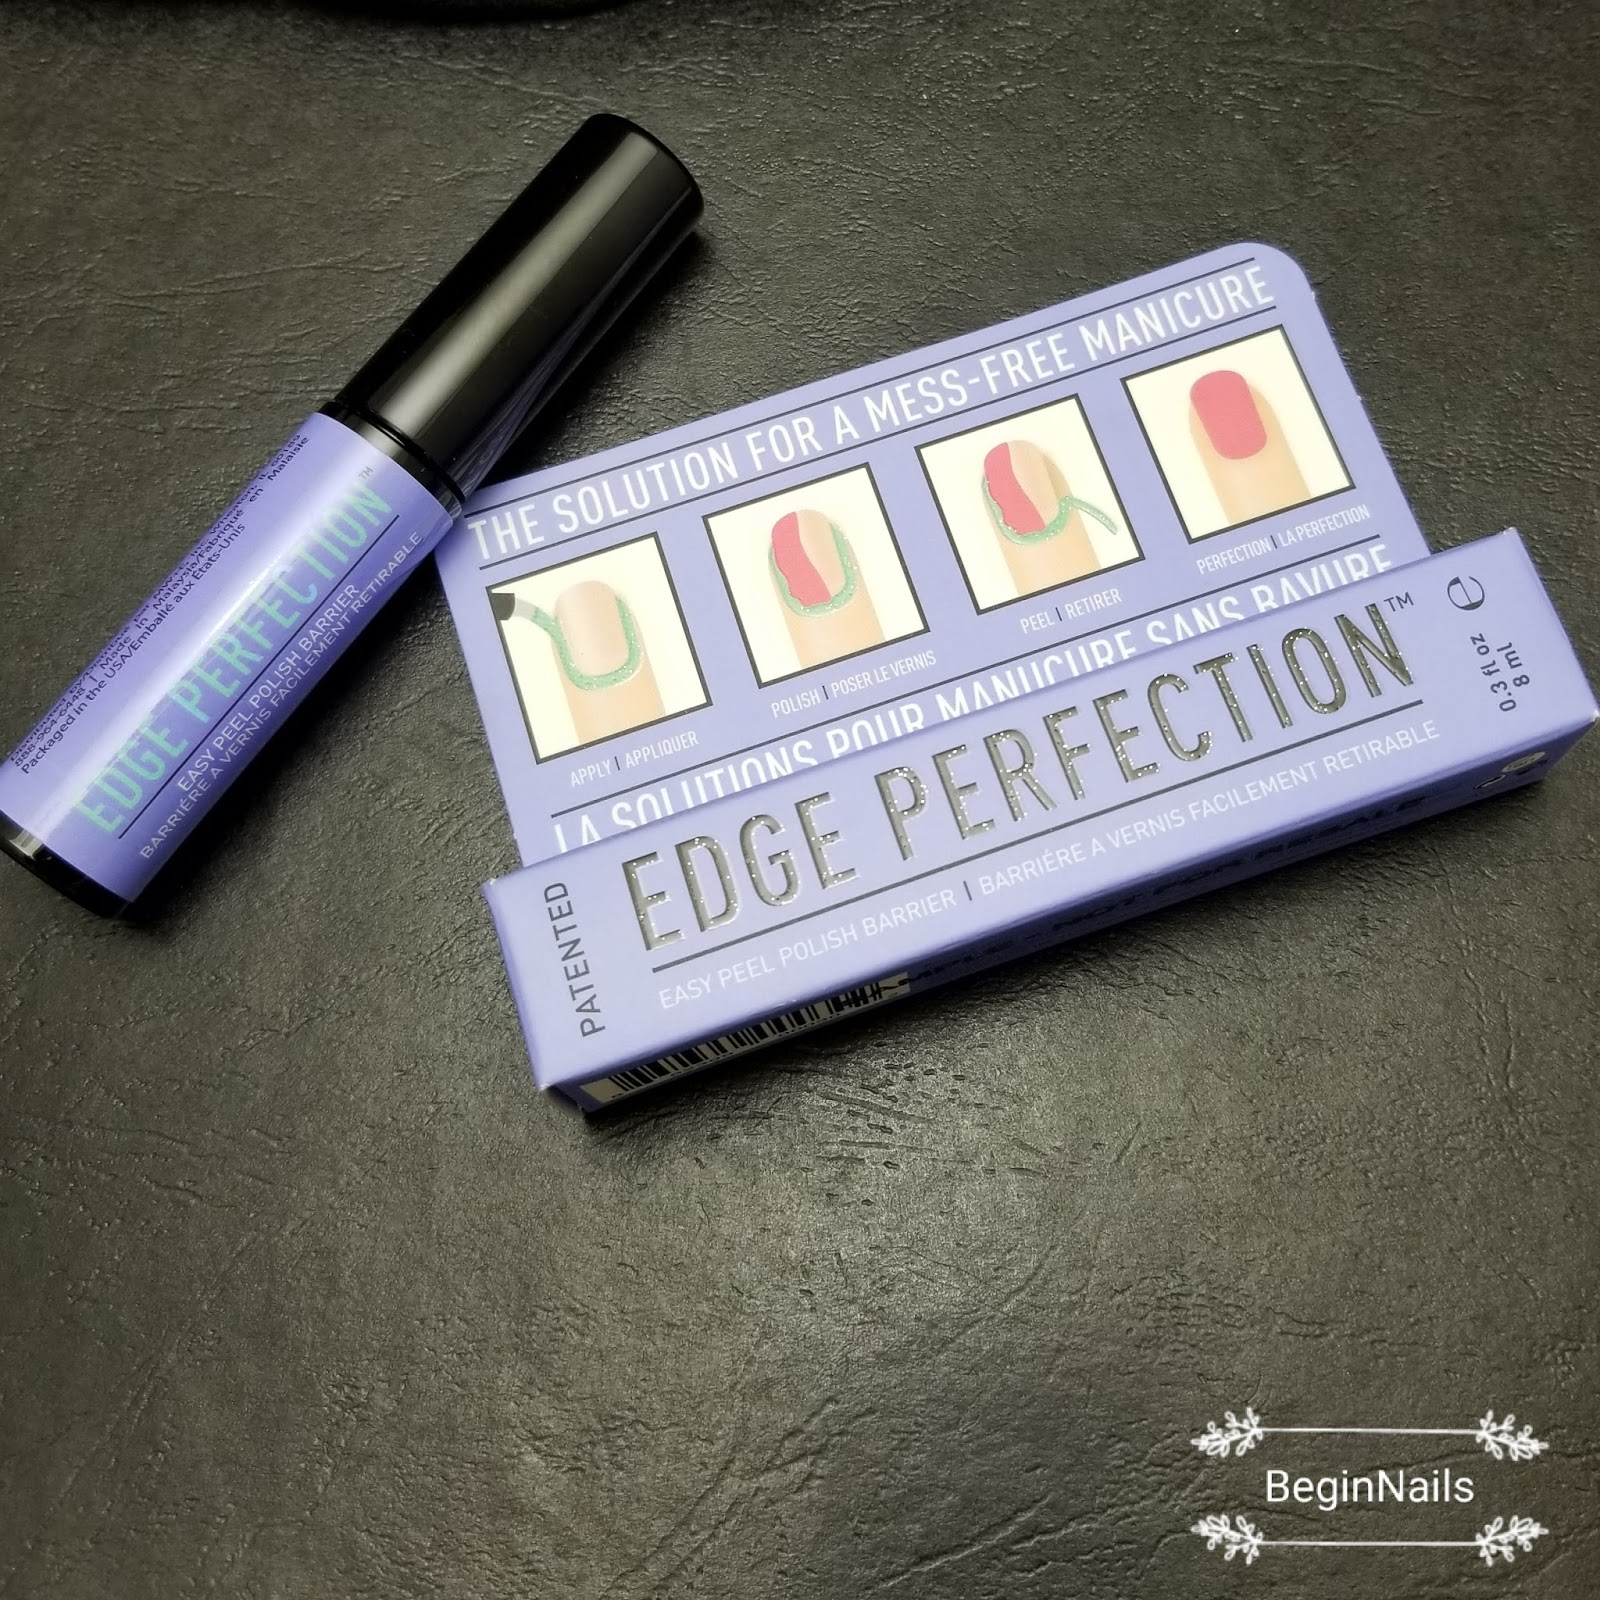 Let\'s Begin Nails: Edge Perfection Review